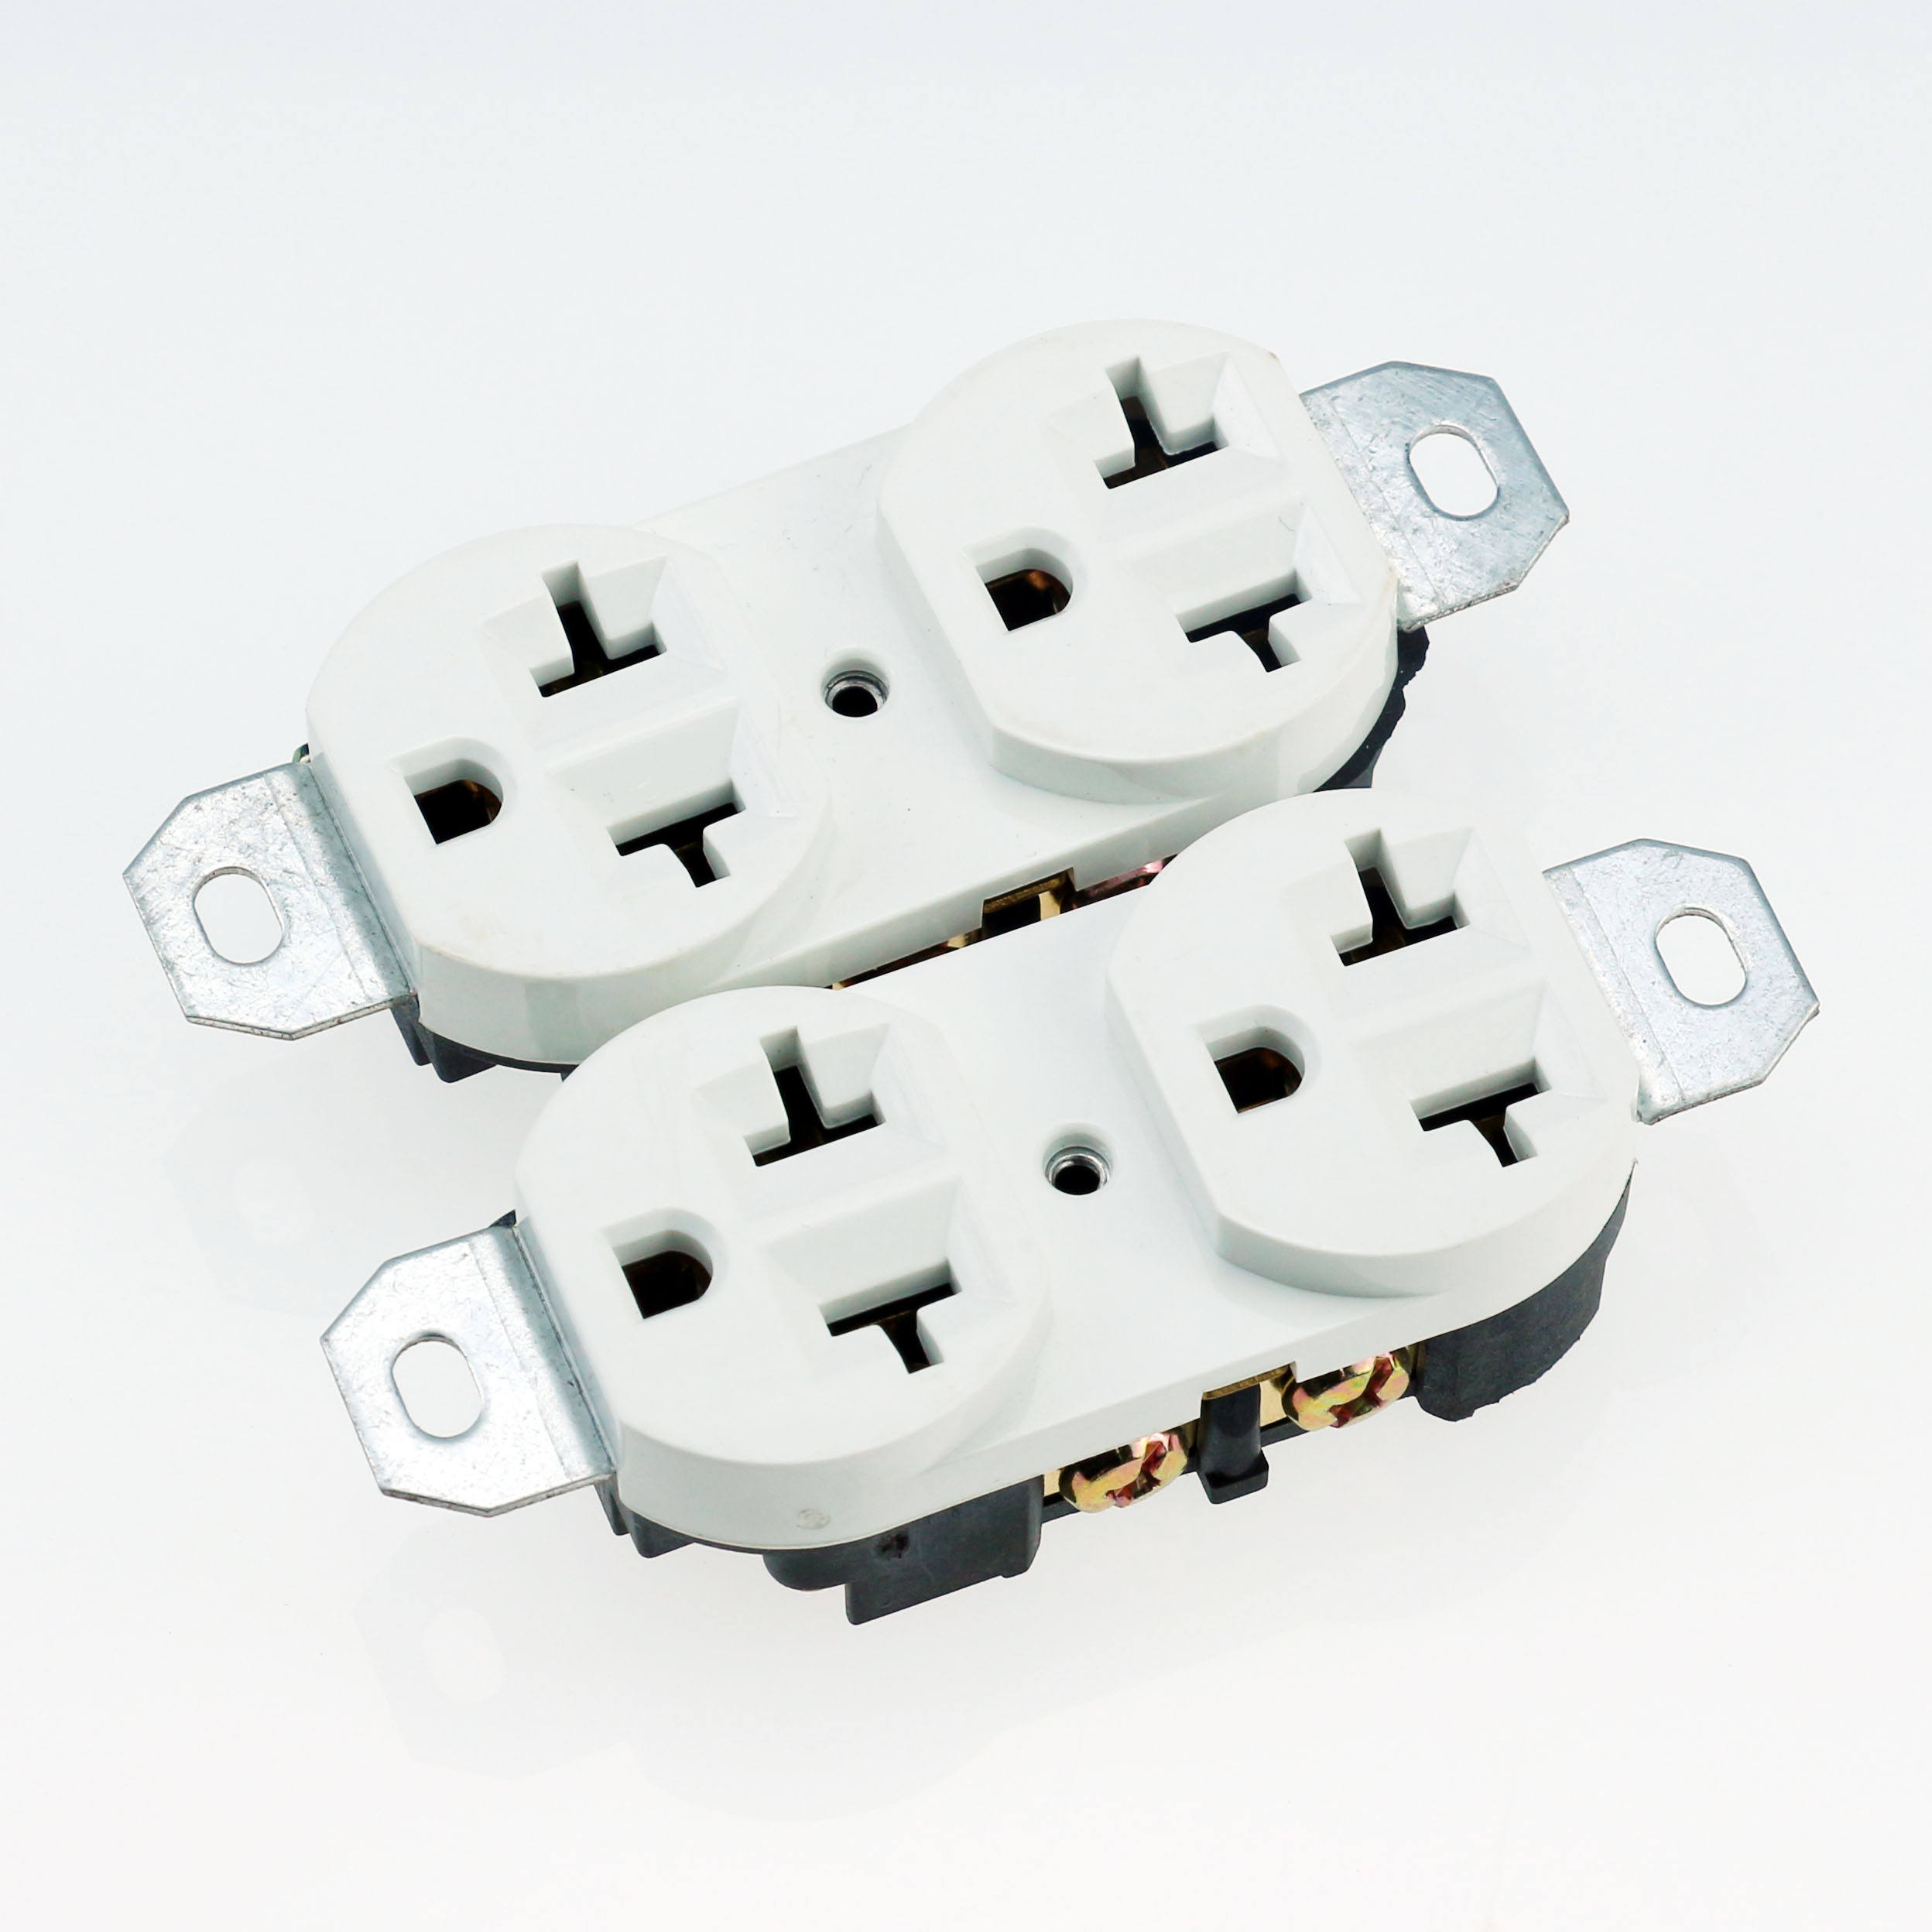 US standard Nema 6-20R receptacle duplex outlet american outlet socket electrical wall socket NTJD20